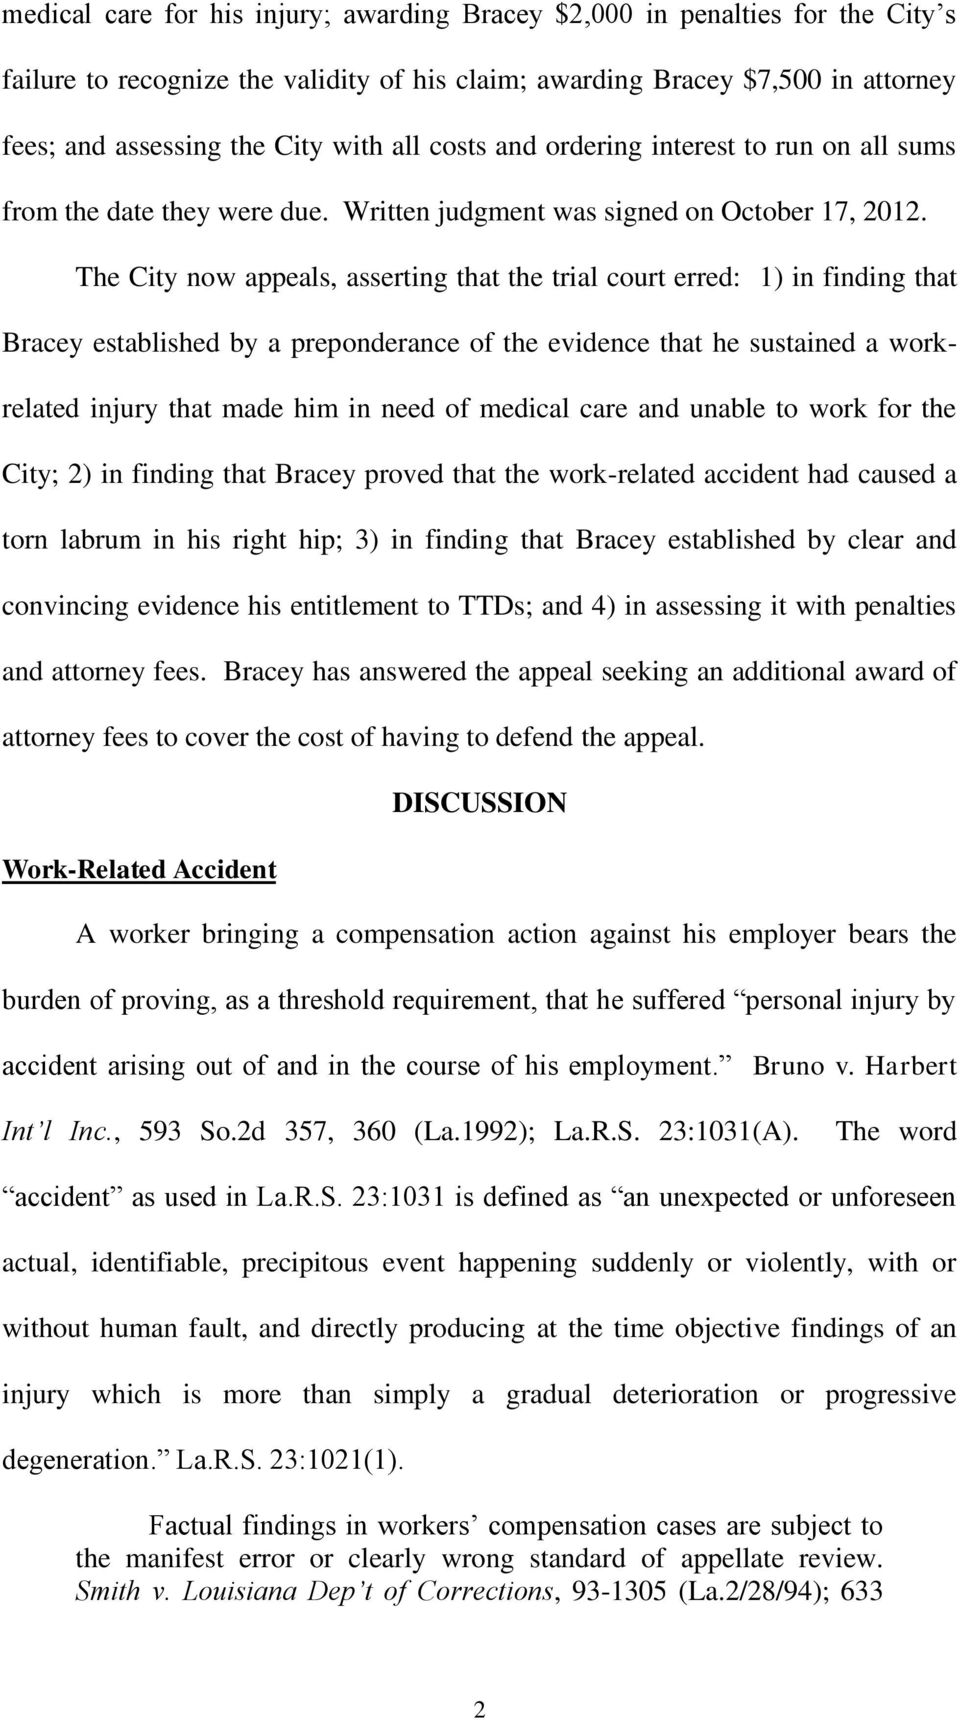 The City now appeals, asserting that the trial court erred: 1) in finding that Bracey established by a preponderance of the evidence that he sustained a workrelated injury that made him in need of